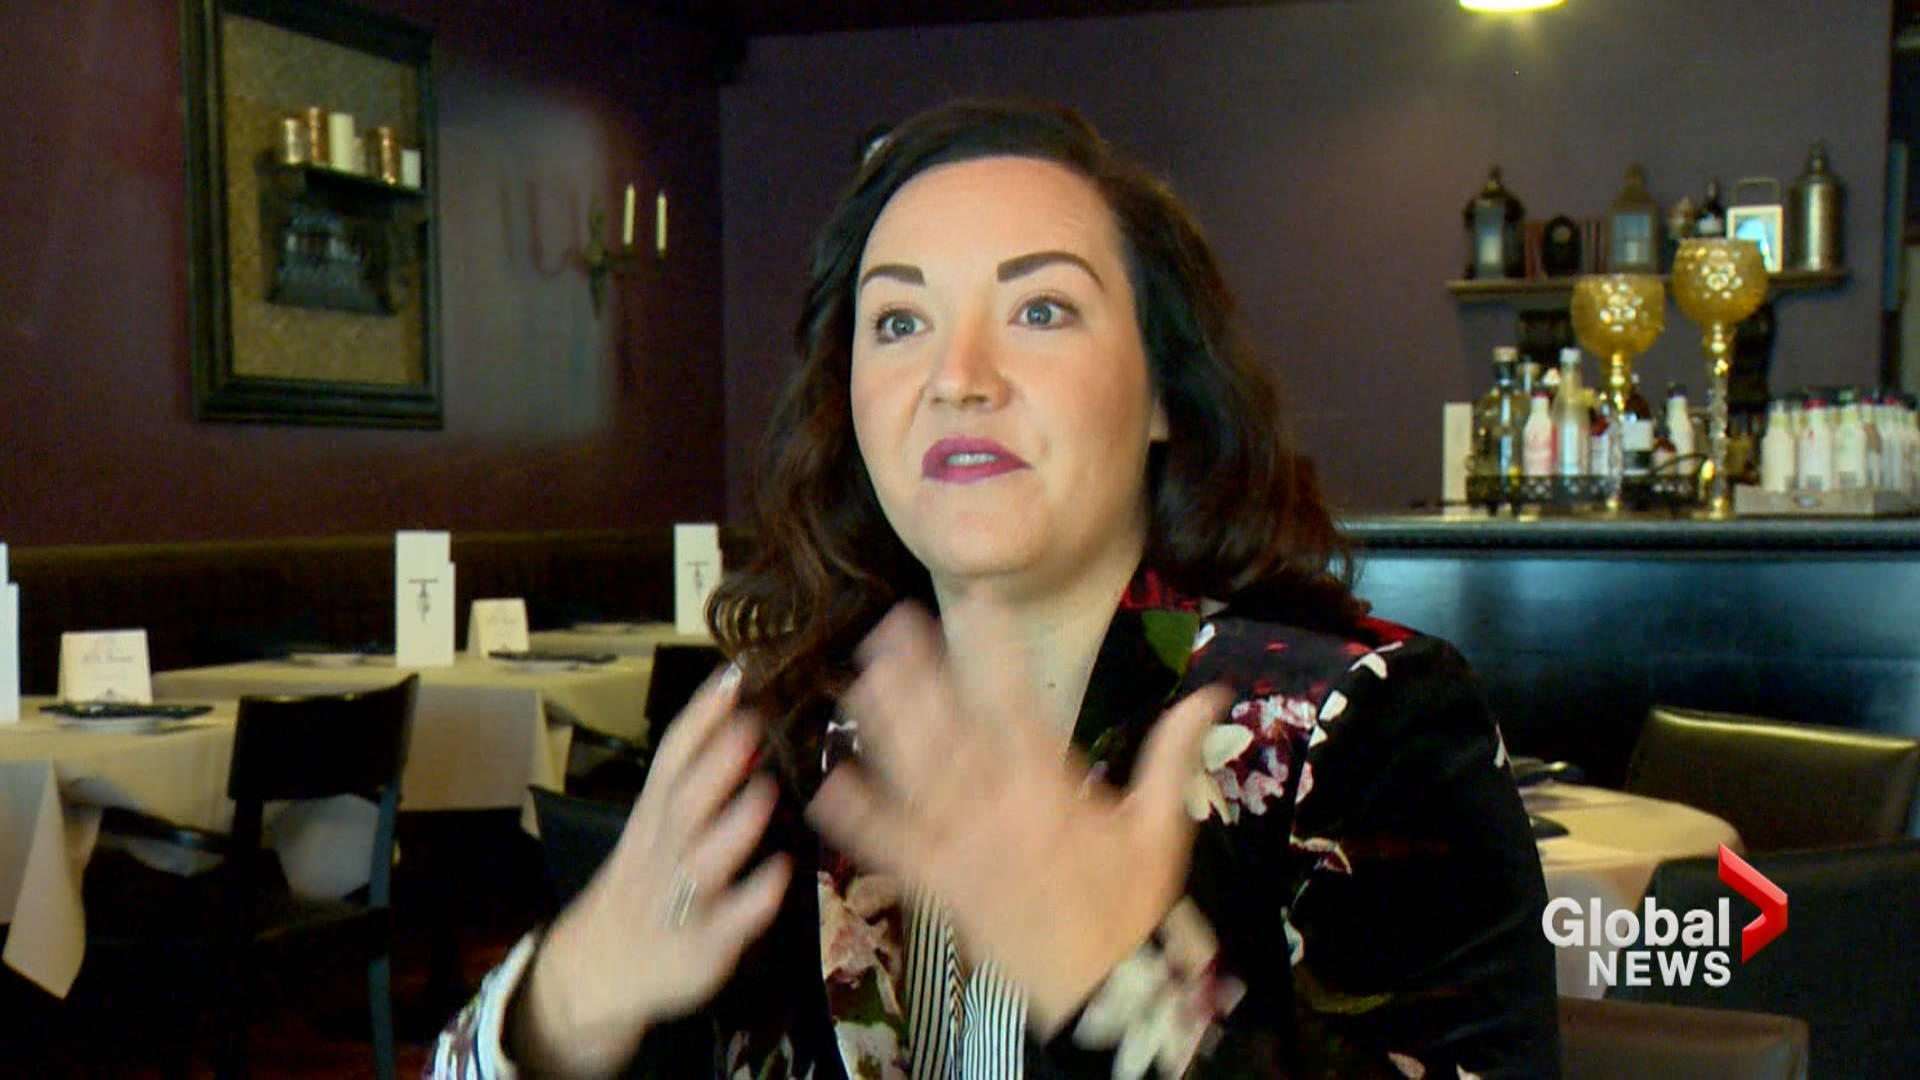 Lethbridge businesses struggle with negative perceptions of downtown